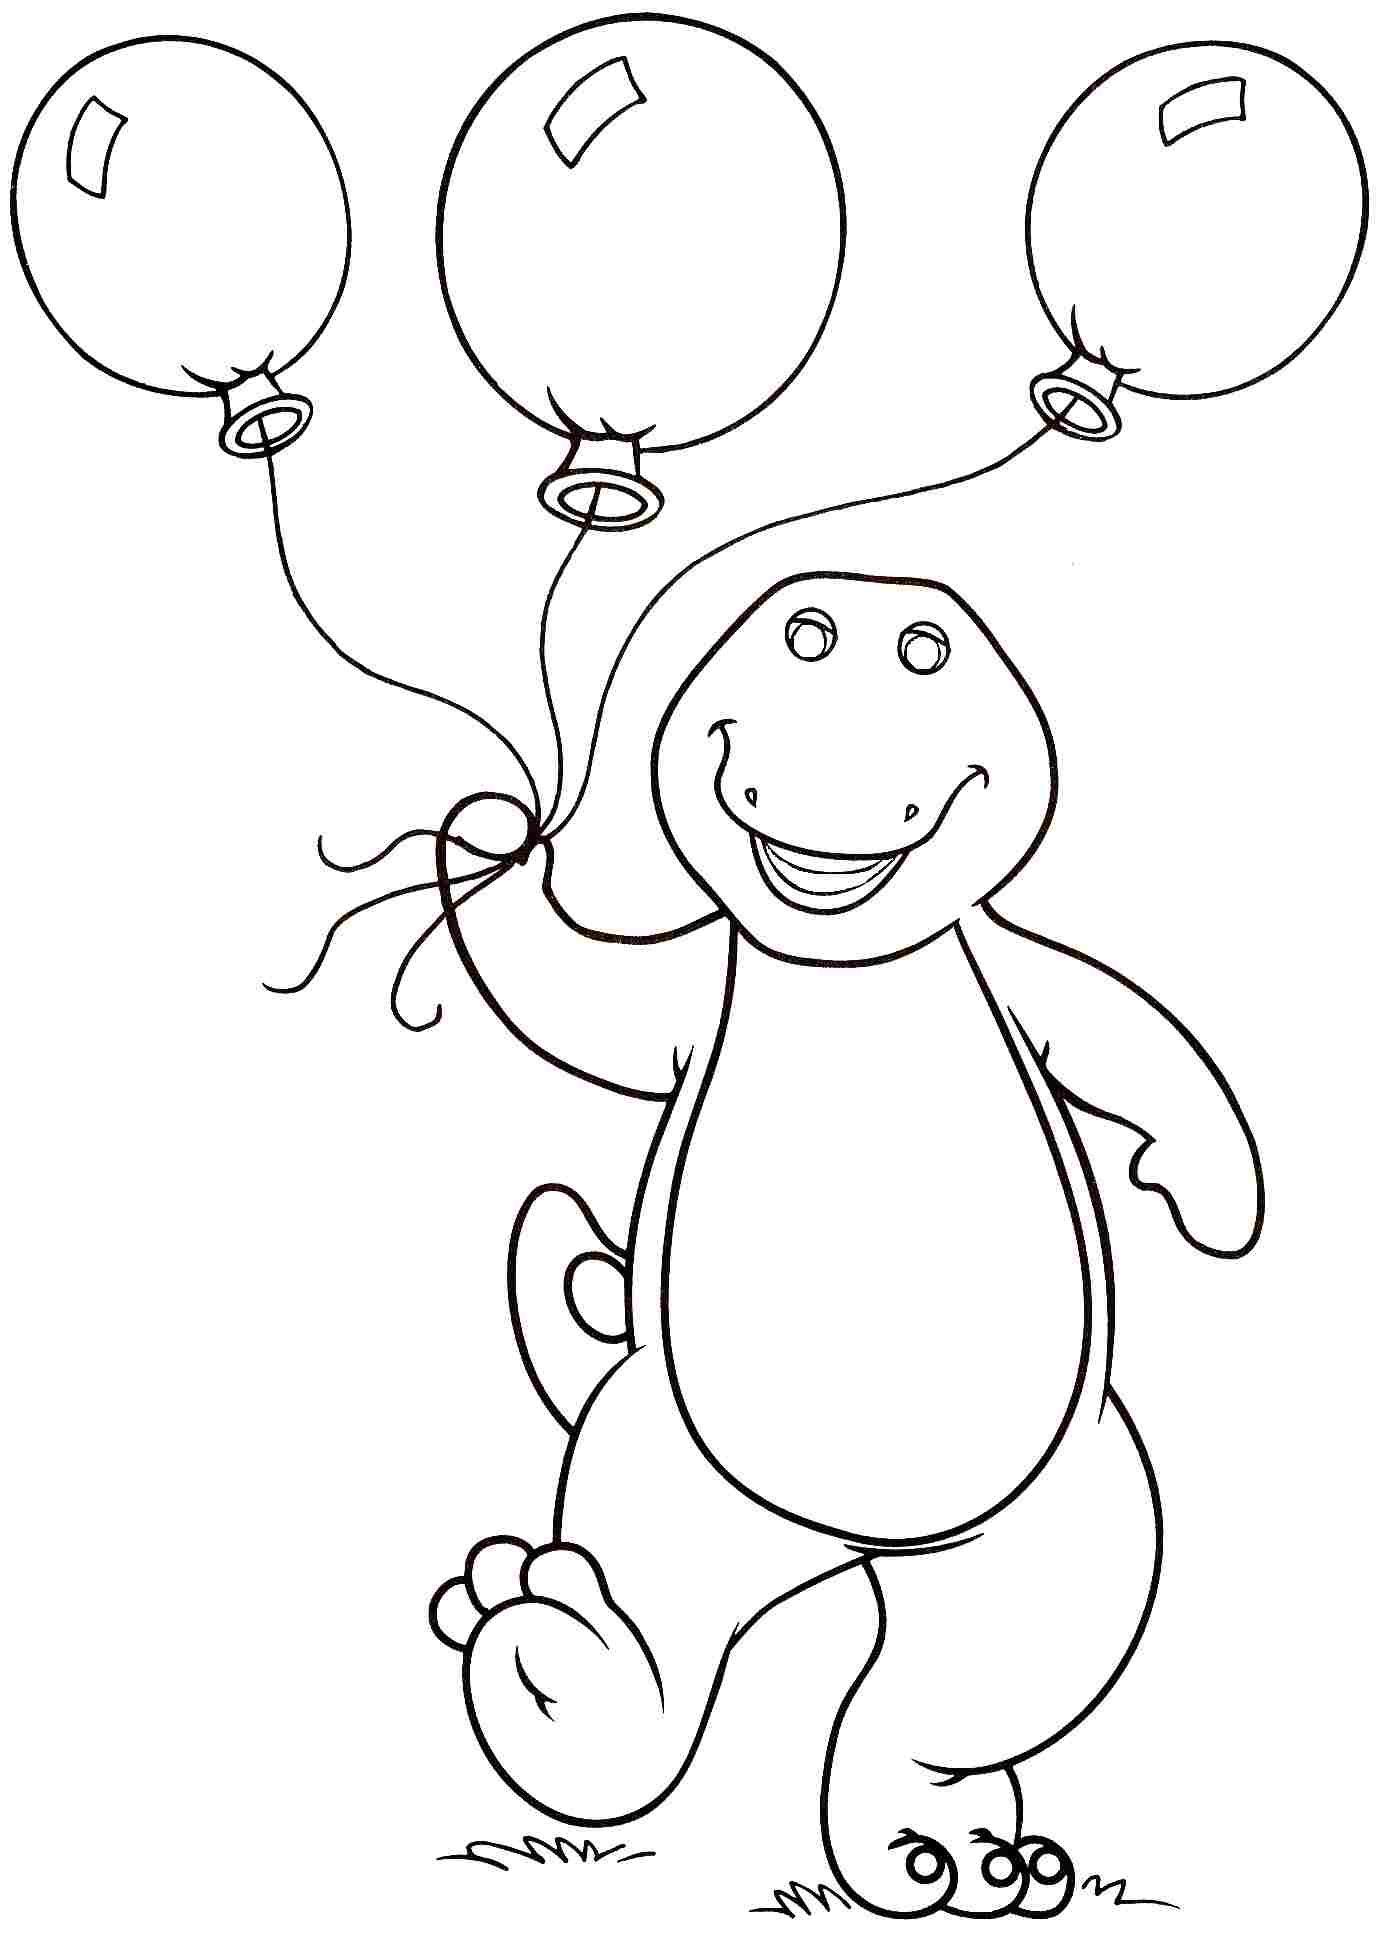 coloring barney and friends coloring page printable barney